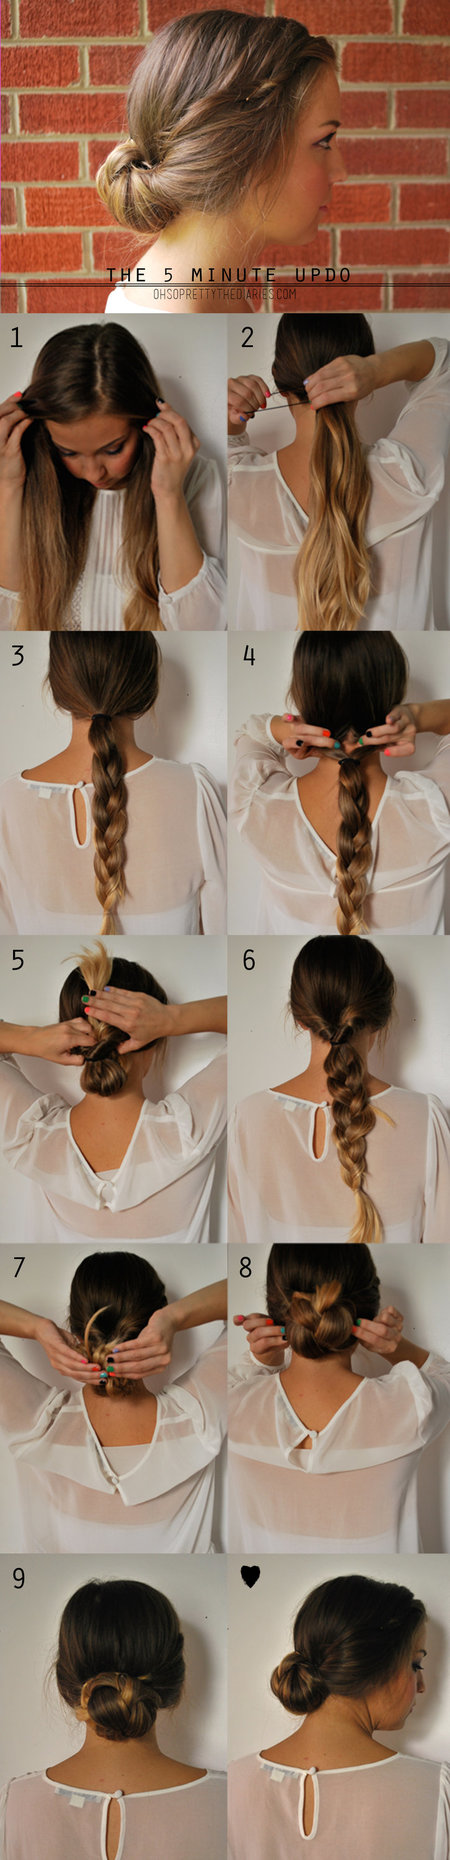 The minute updo braided gibson tuck sadly my hair is too long